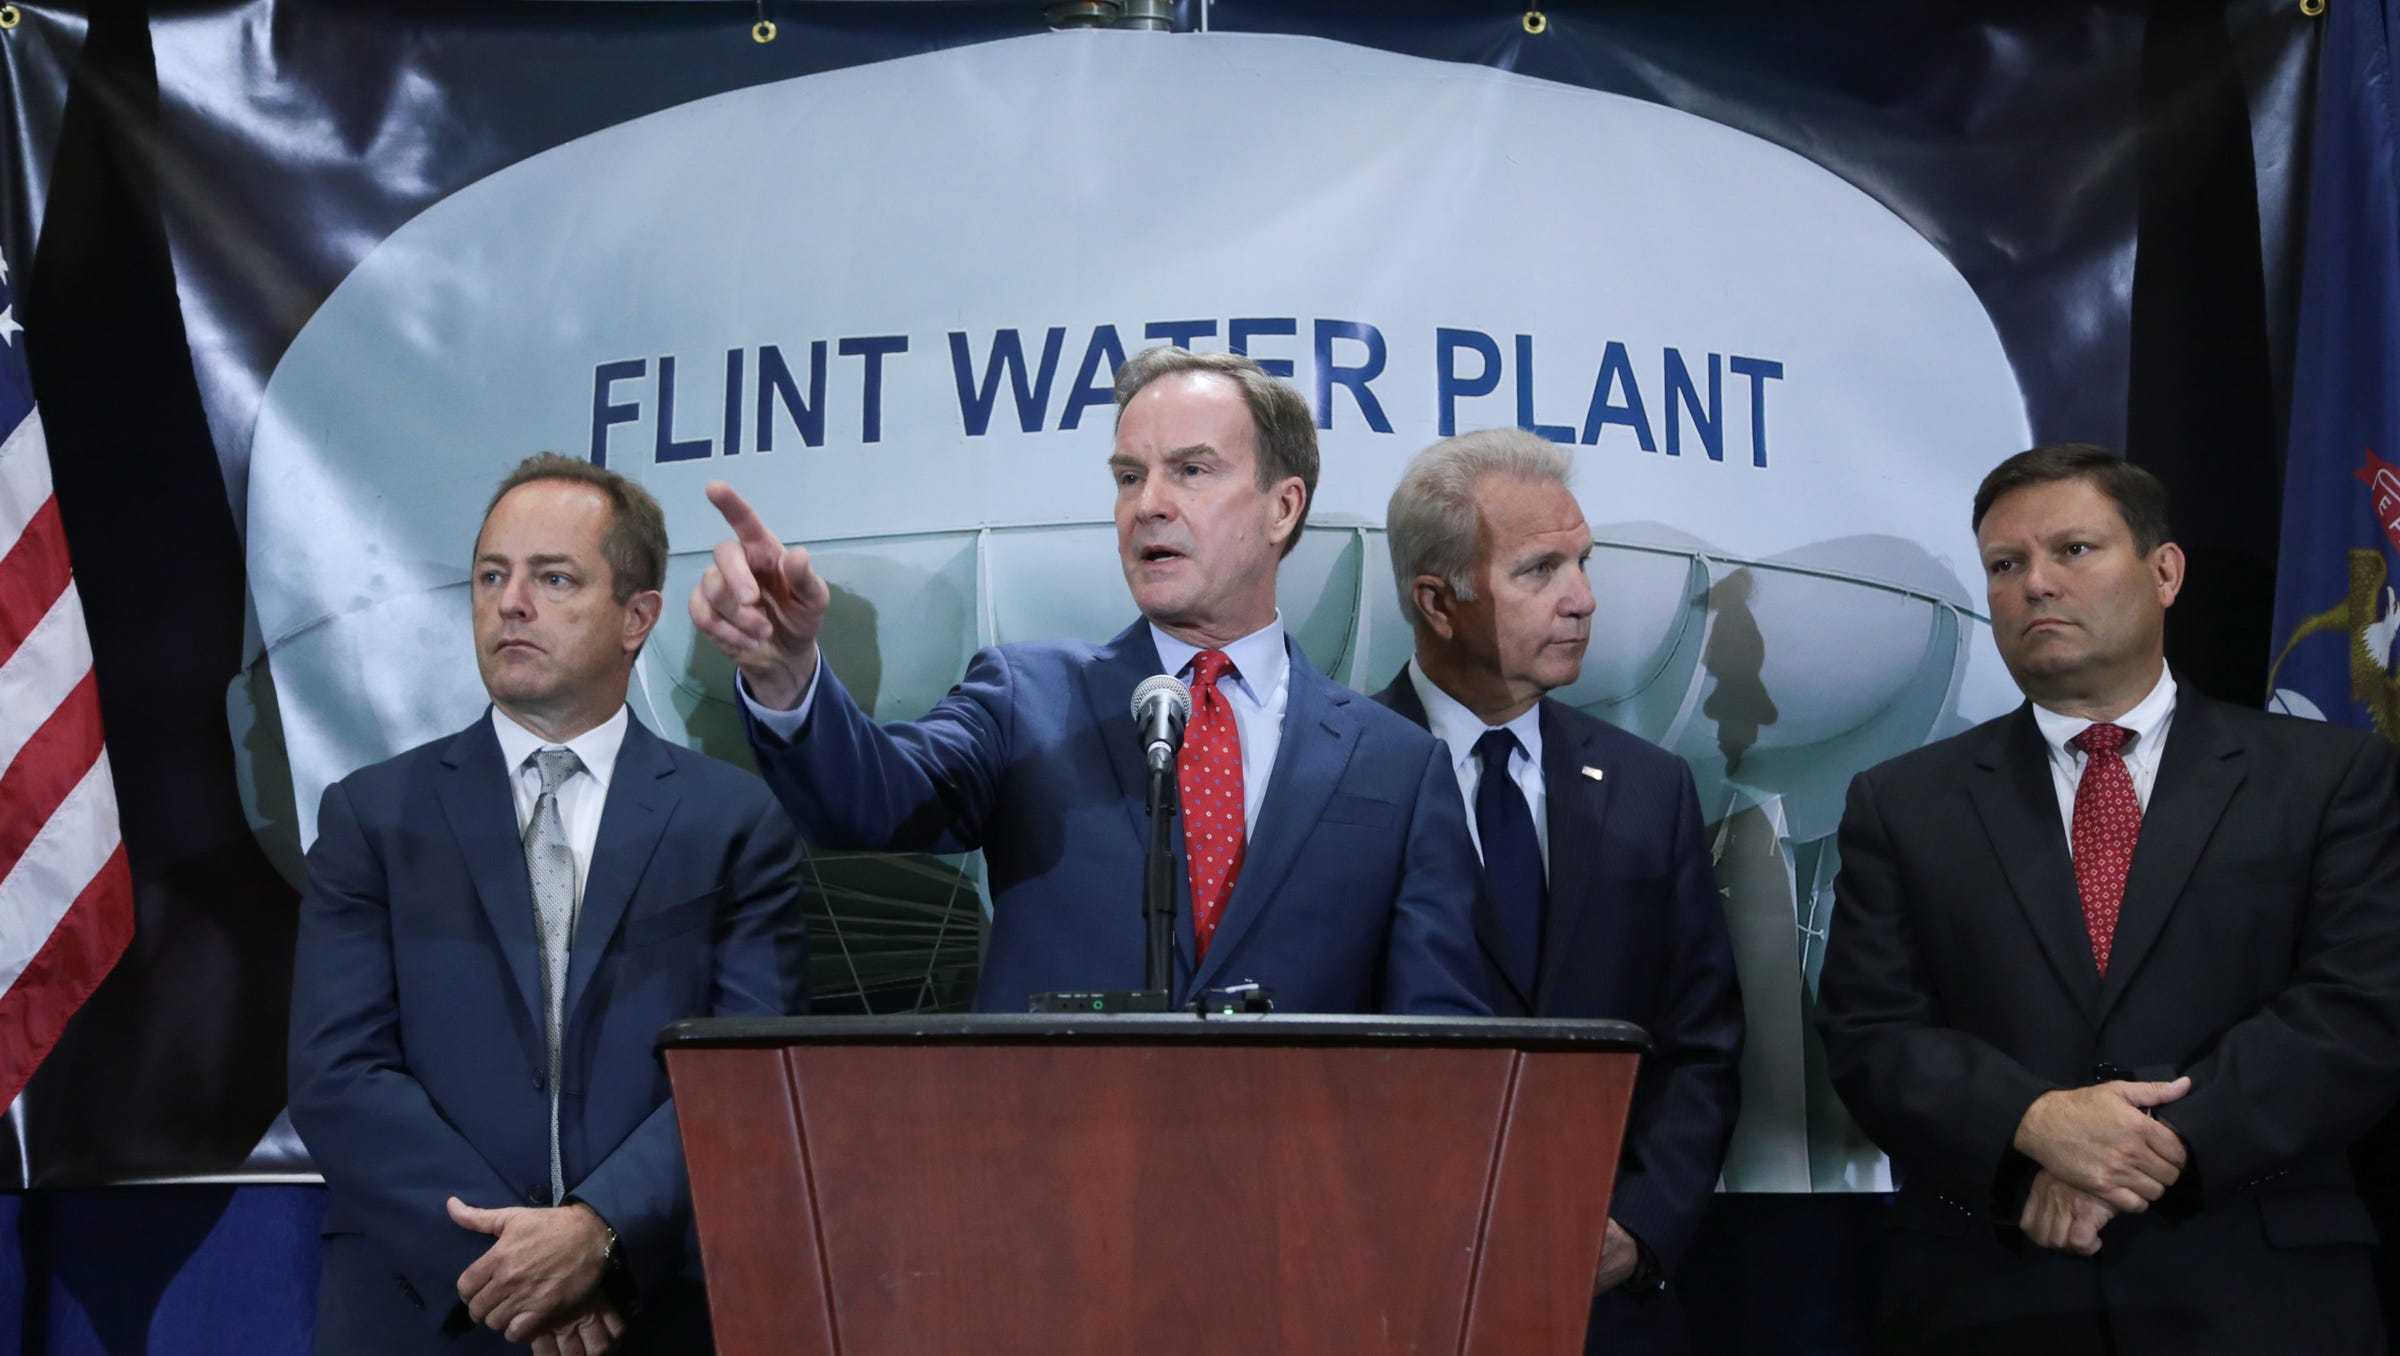 5 Officials Charged With Involuntary Manslaughter In Flint Water Probe